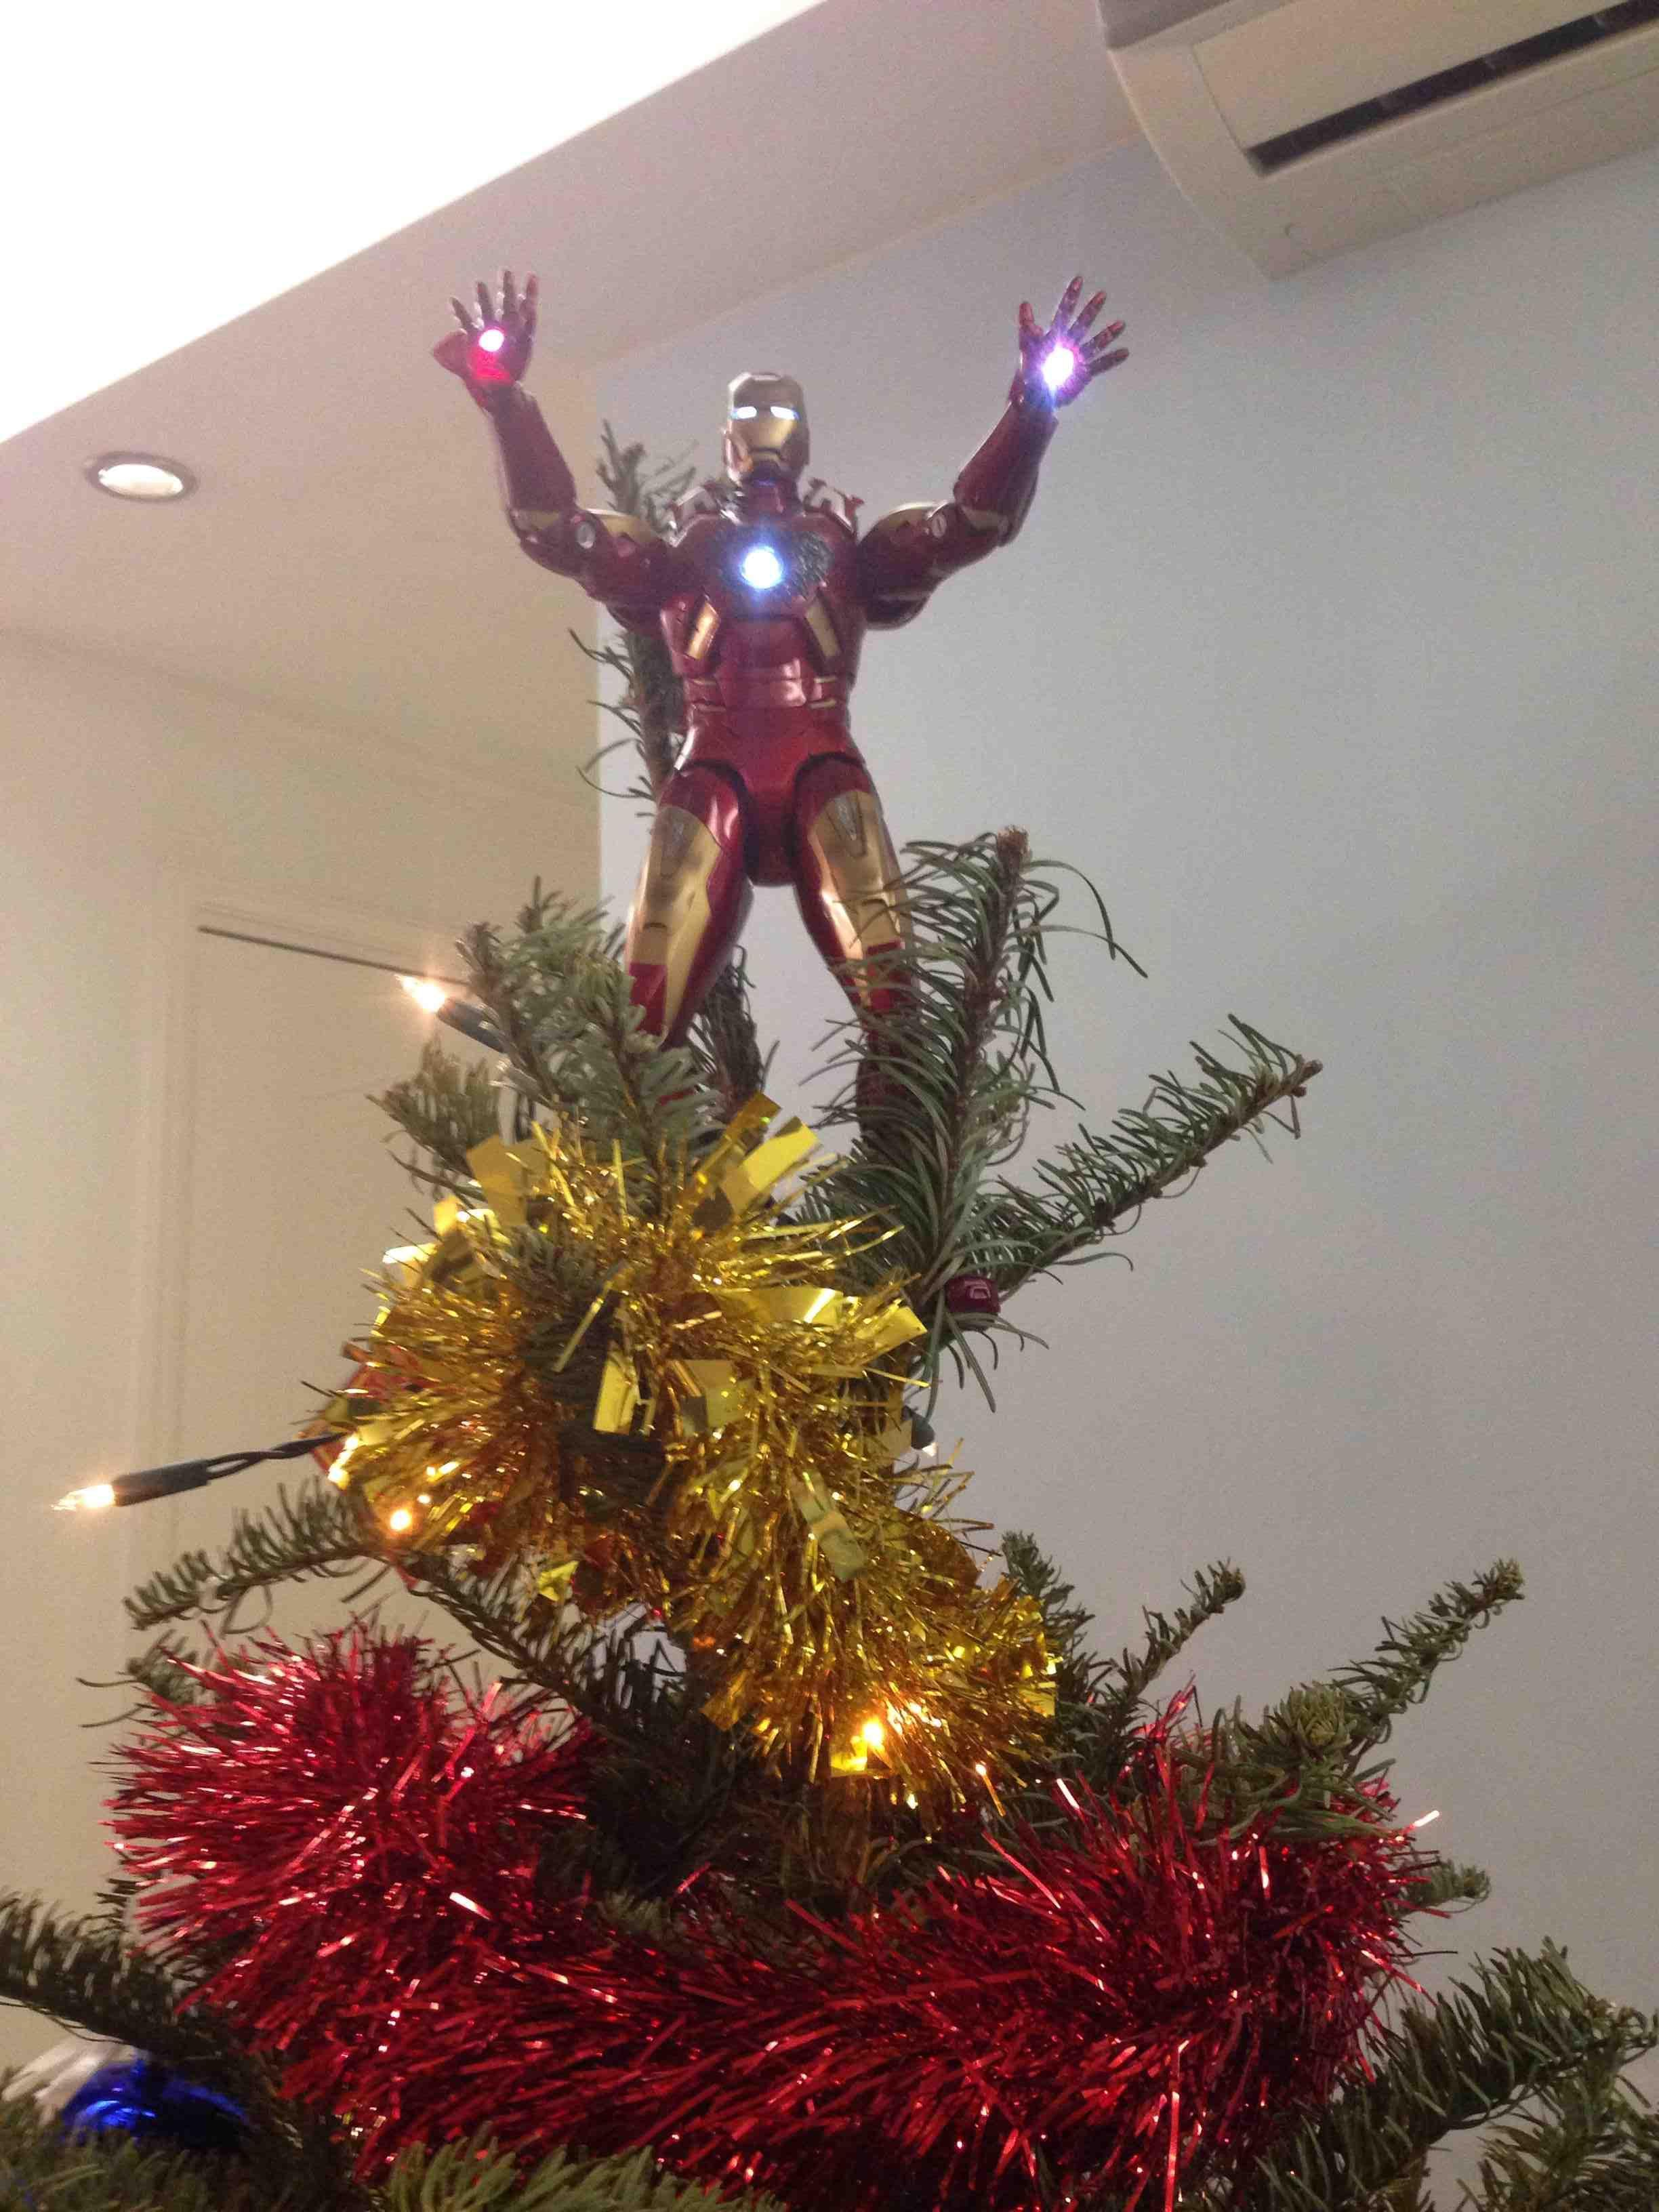 A Stark at the top of the Christmas Tree!